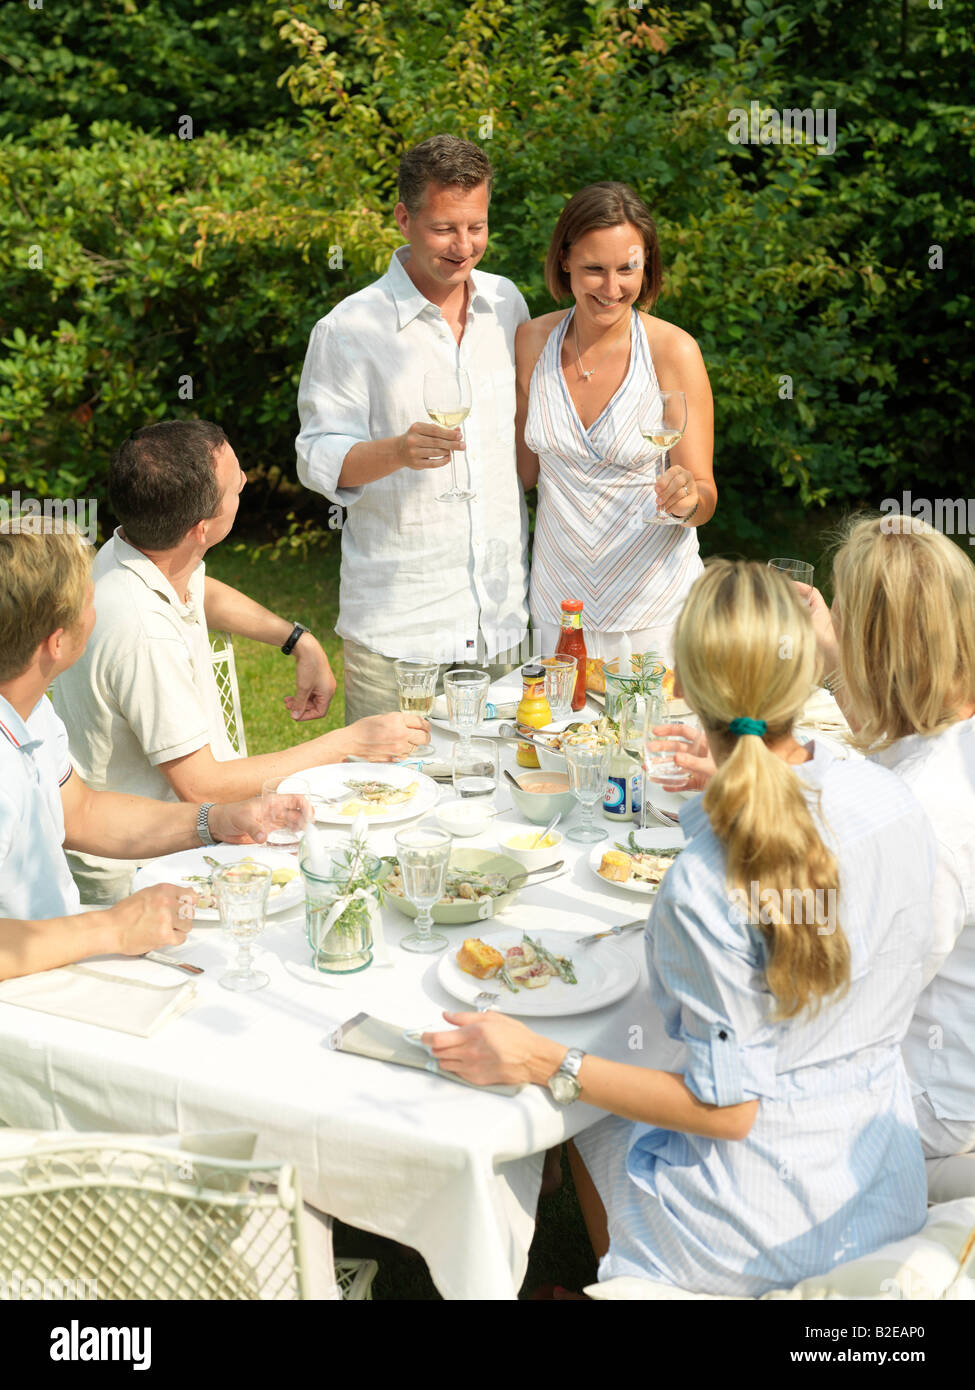 Group of people eating in garden - Stock Image